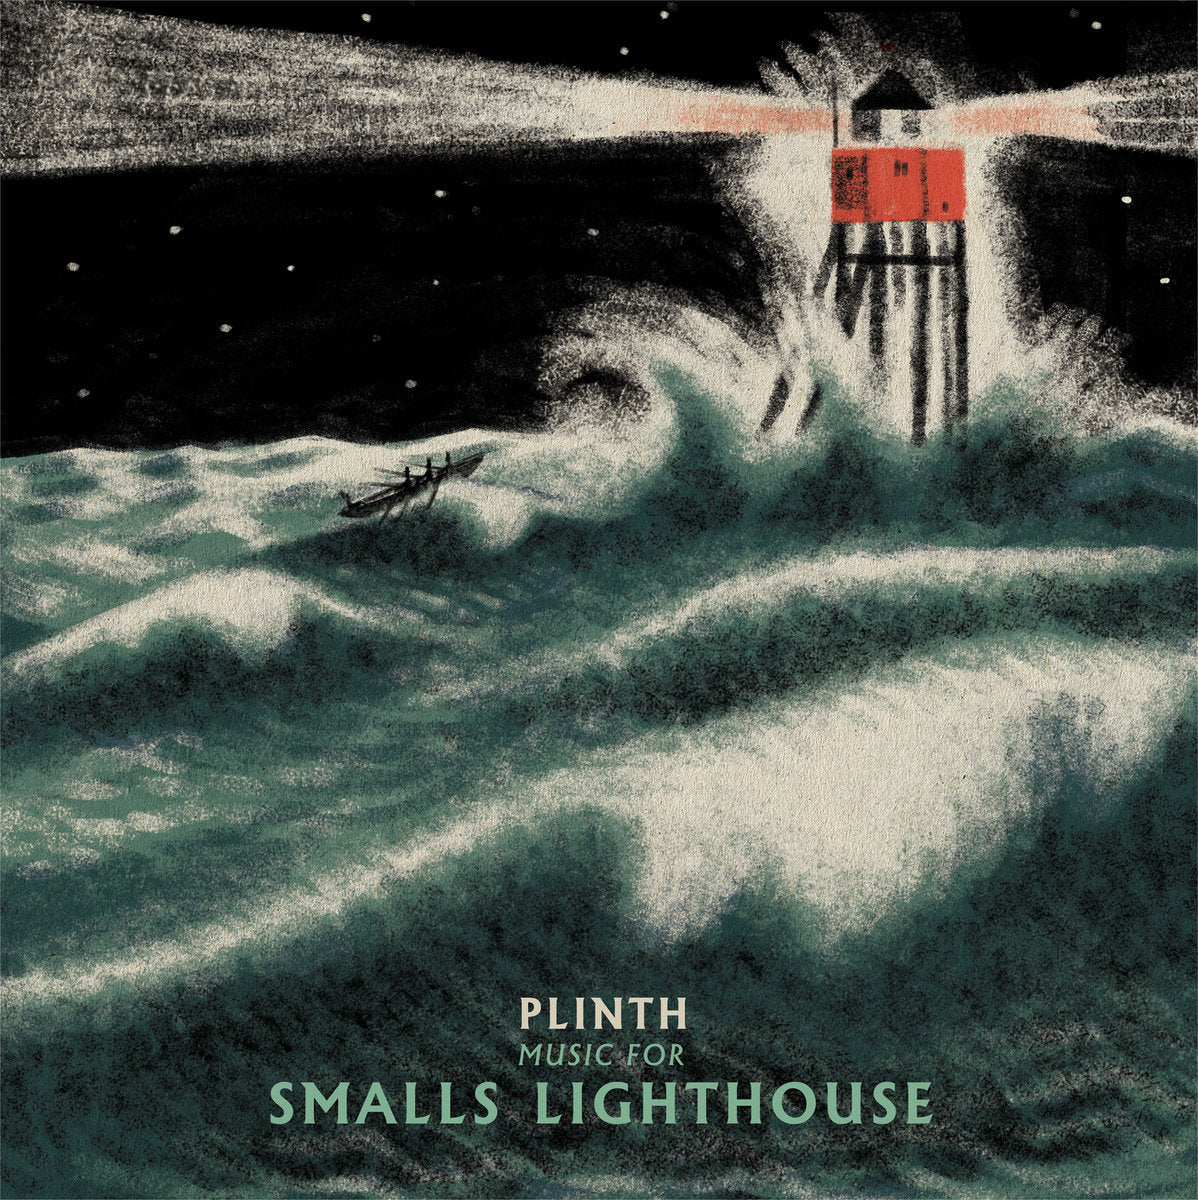 Plinth - Music for Smalls Lighthouse